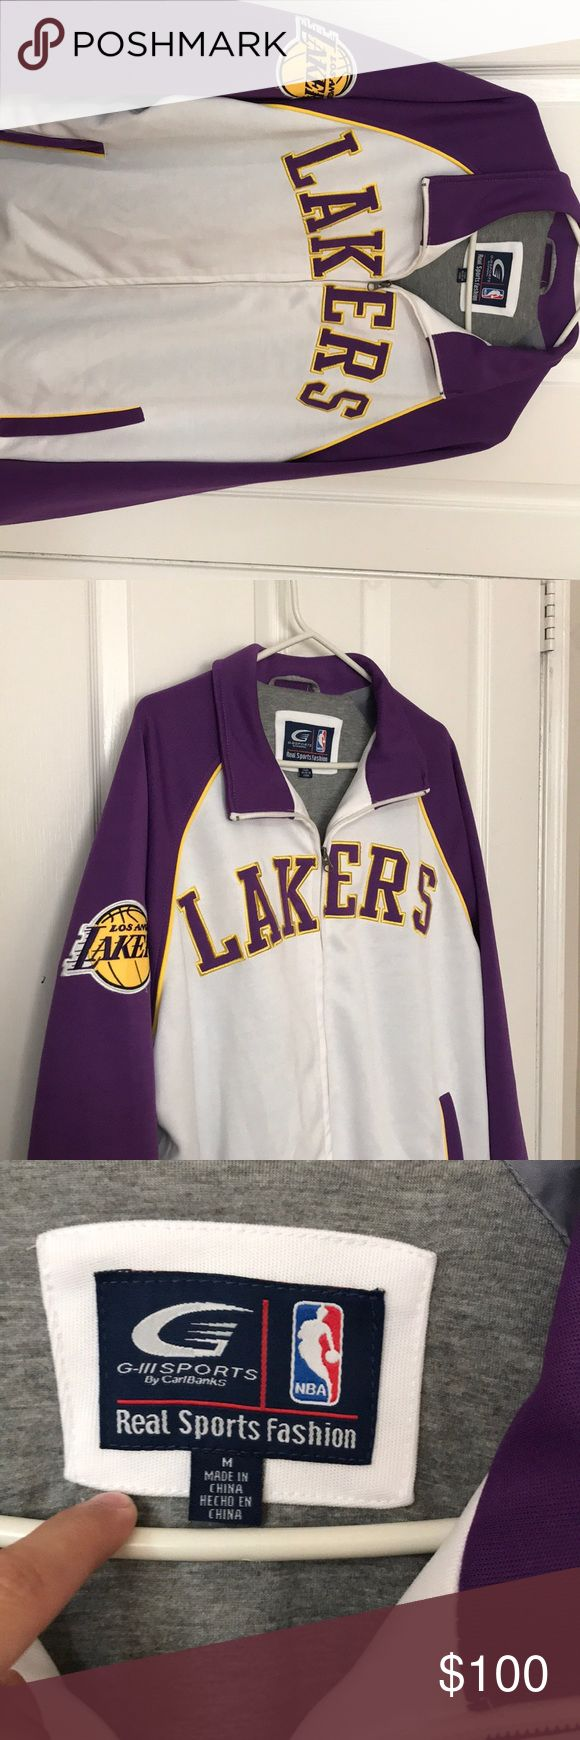 Lakers Jacket Great condition Men's Medium Lakers Jacket Jackets & Coats